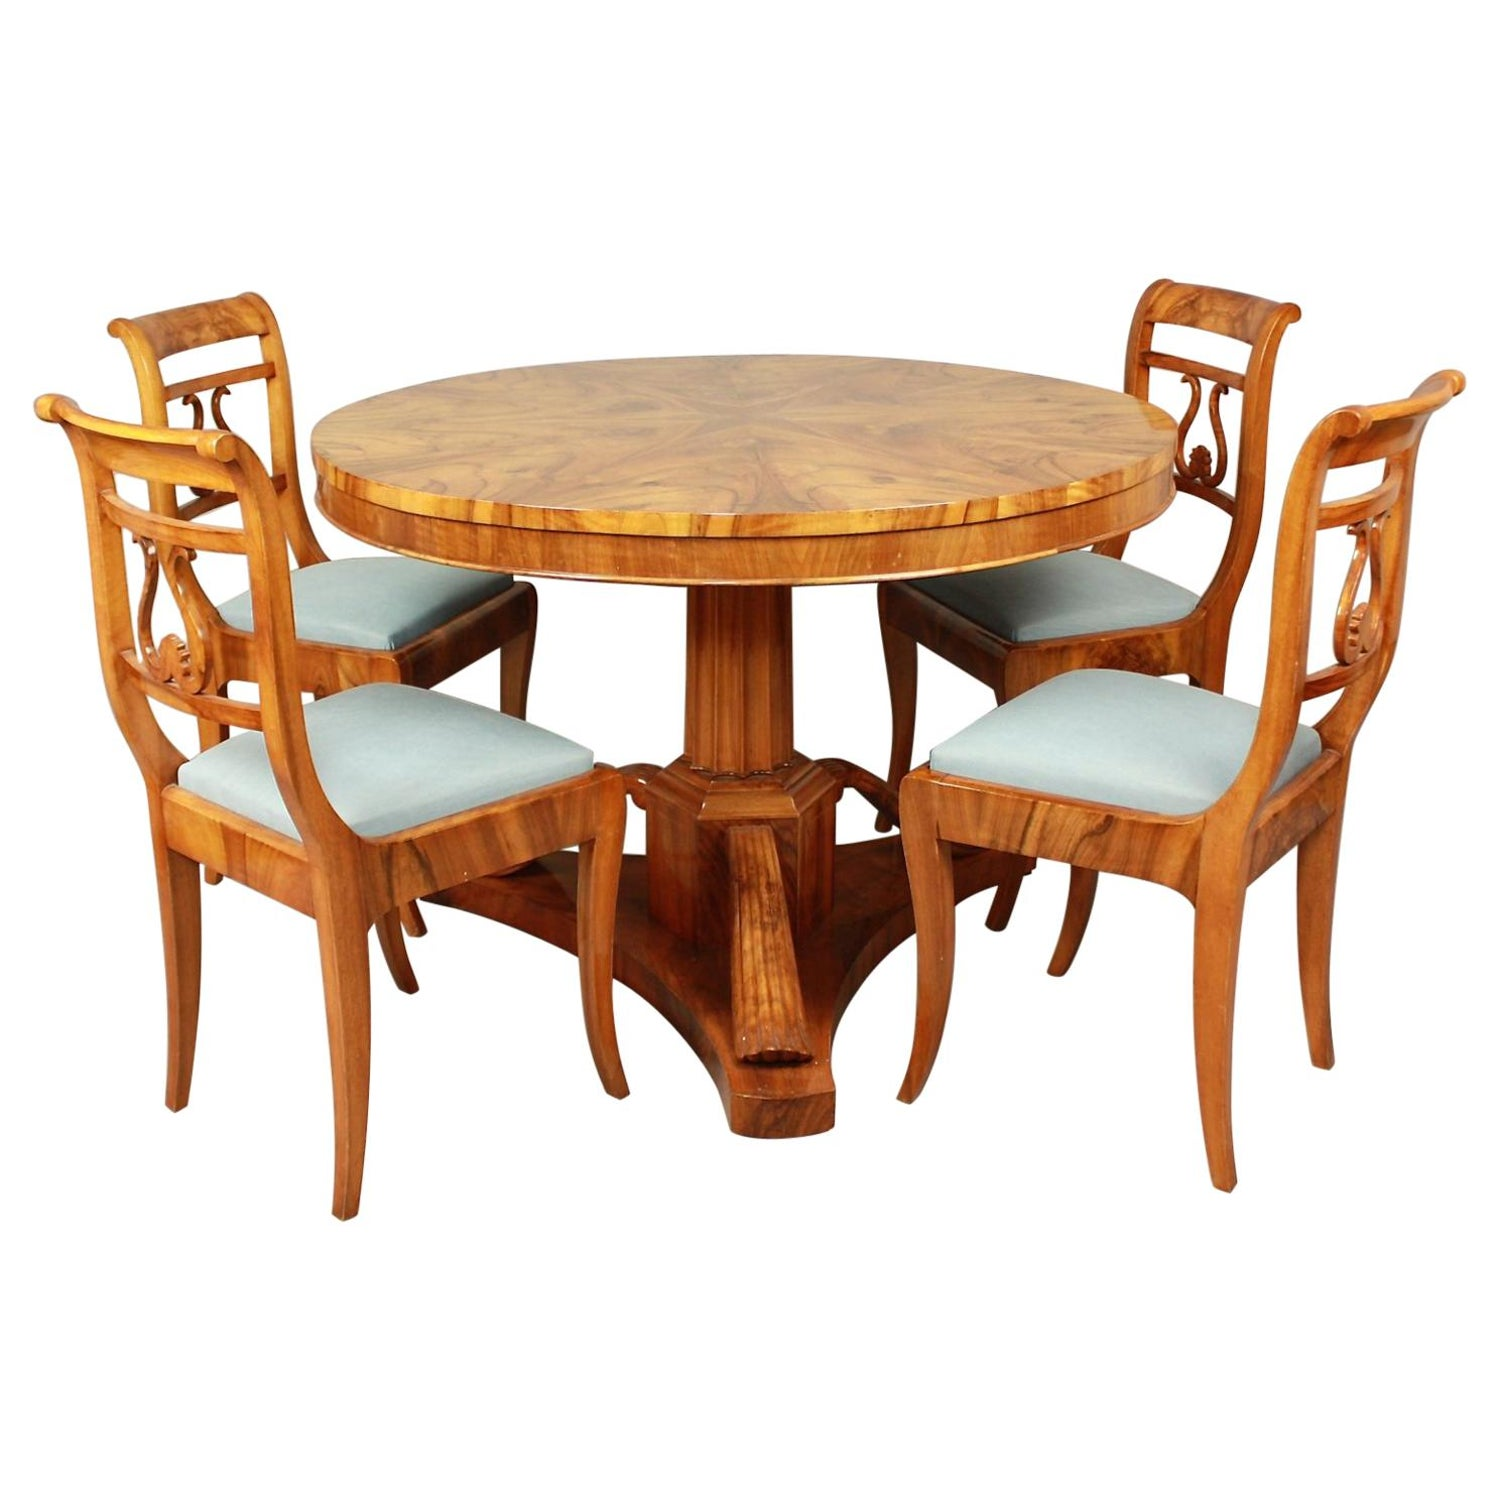 Early 19th Century Round Biedermeier Dining Table With Four Chairs At 1stdibs